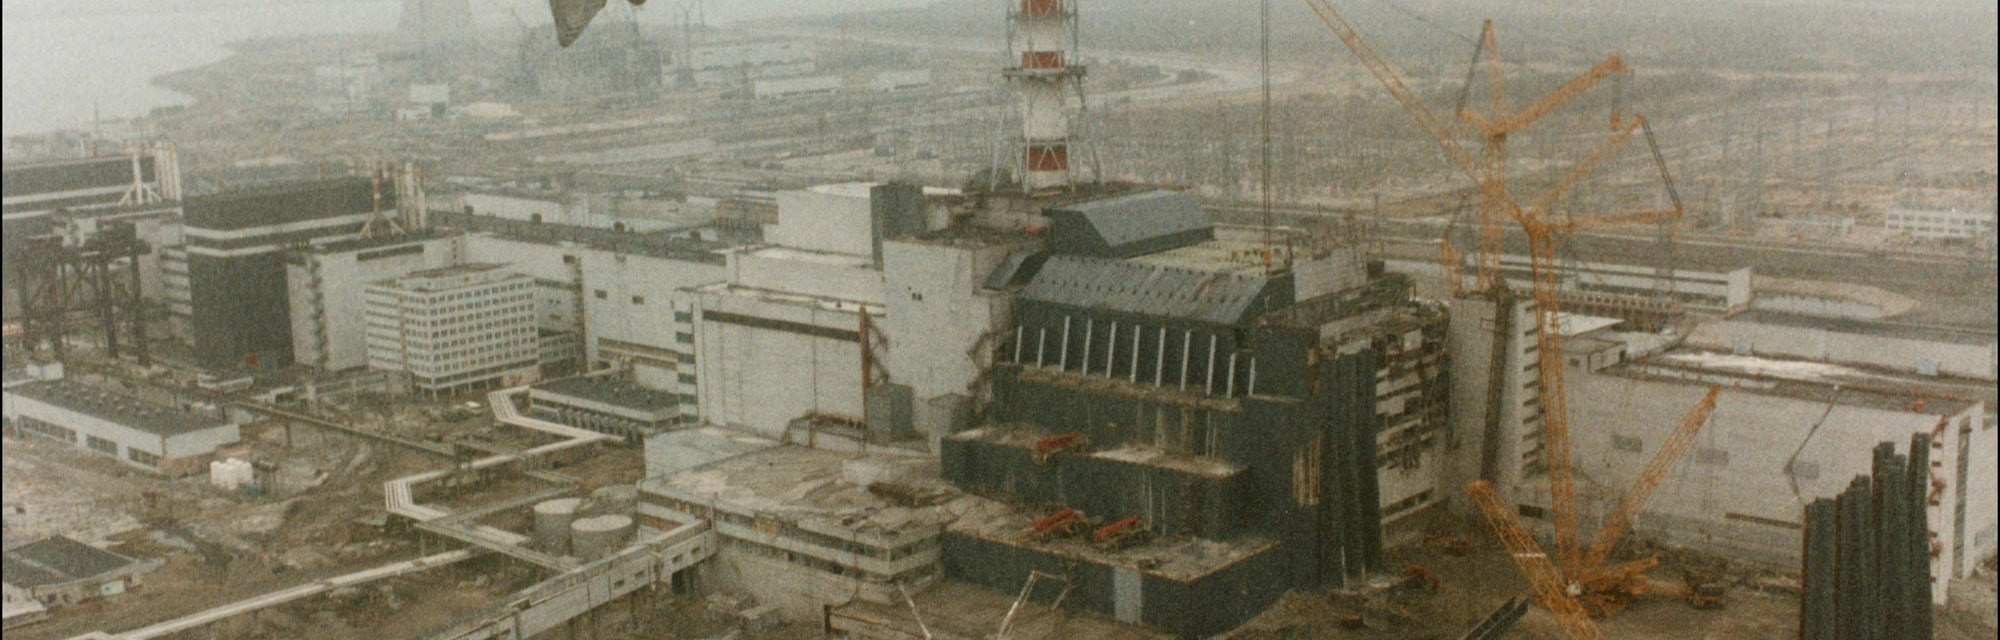 Chernobyl Nuclear Power Plant after the explosion